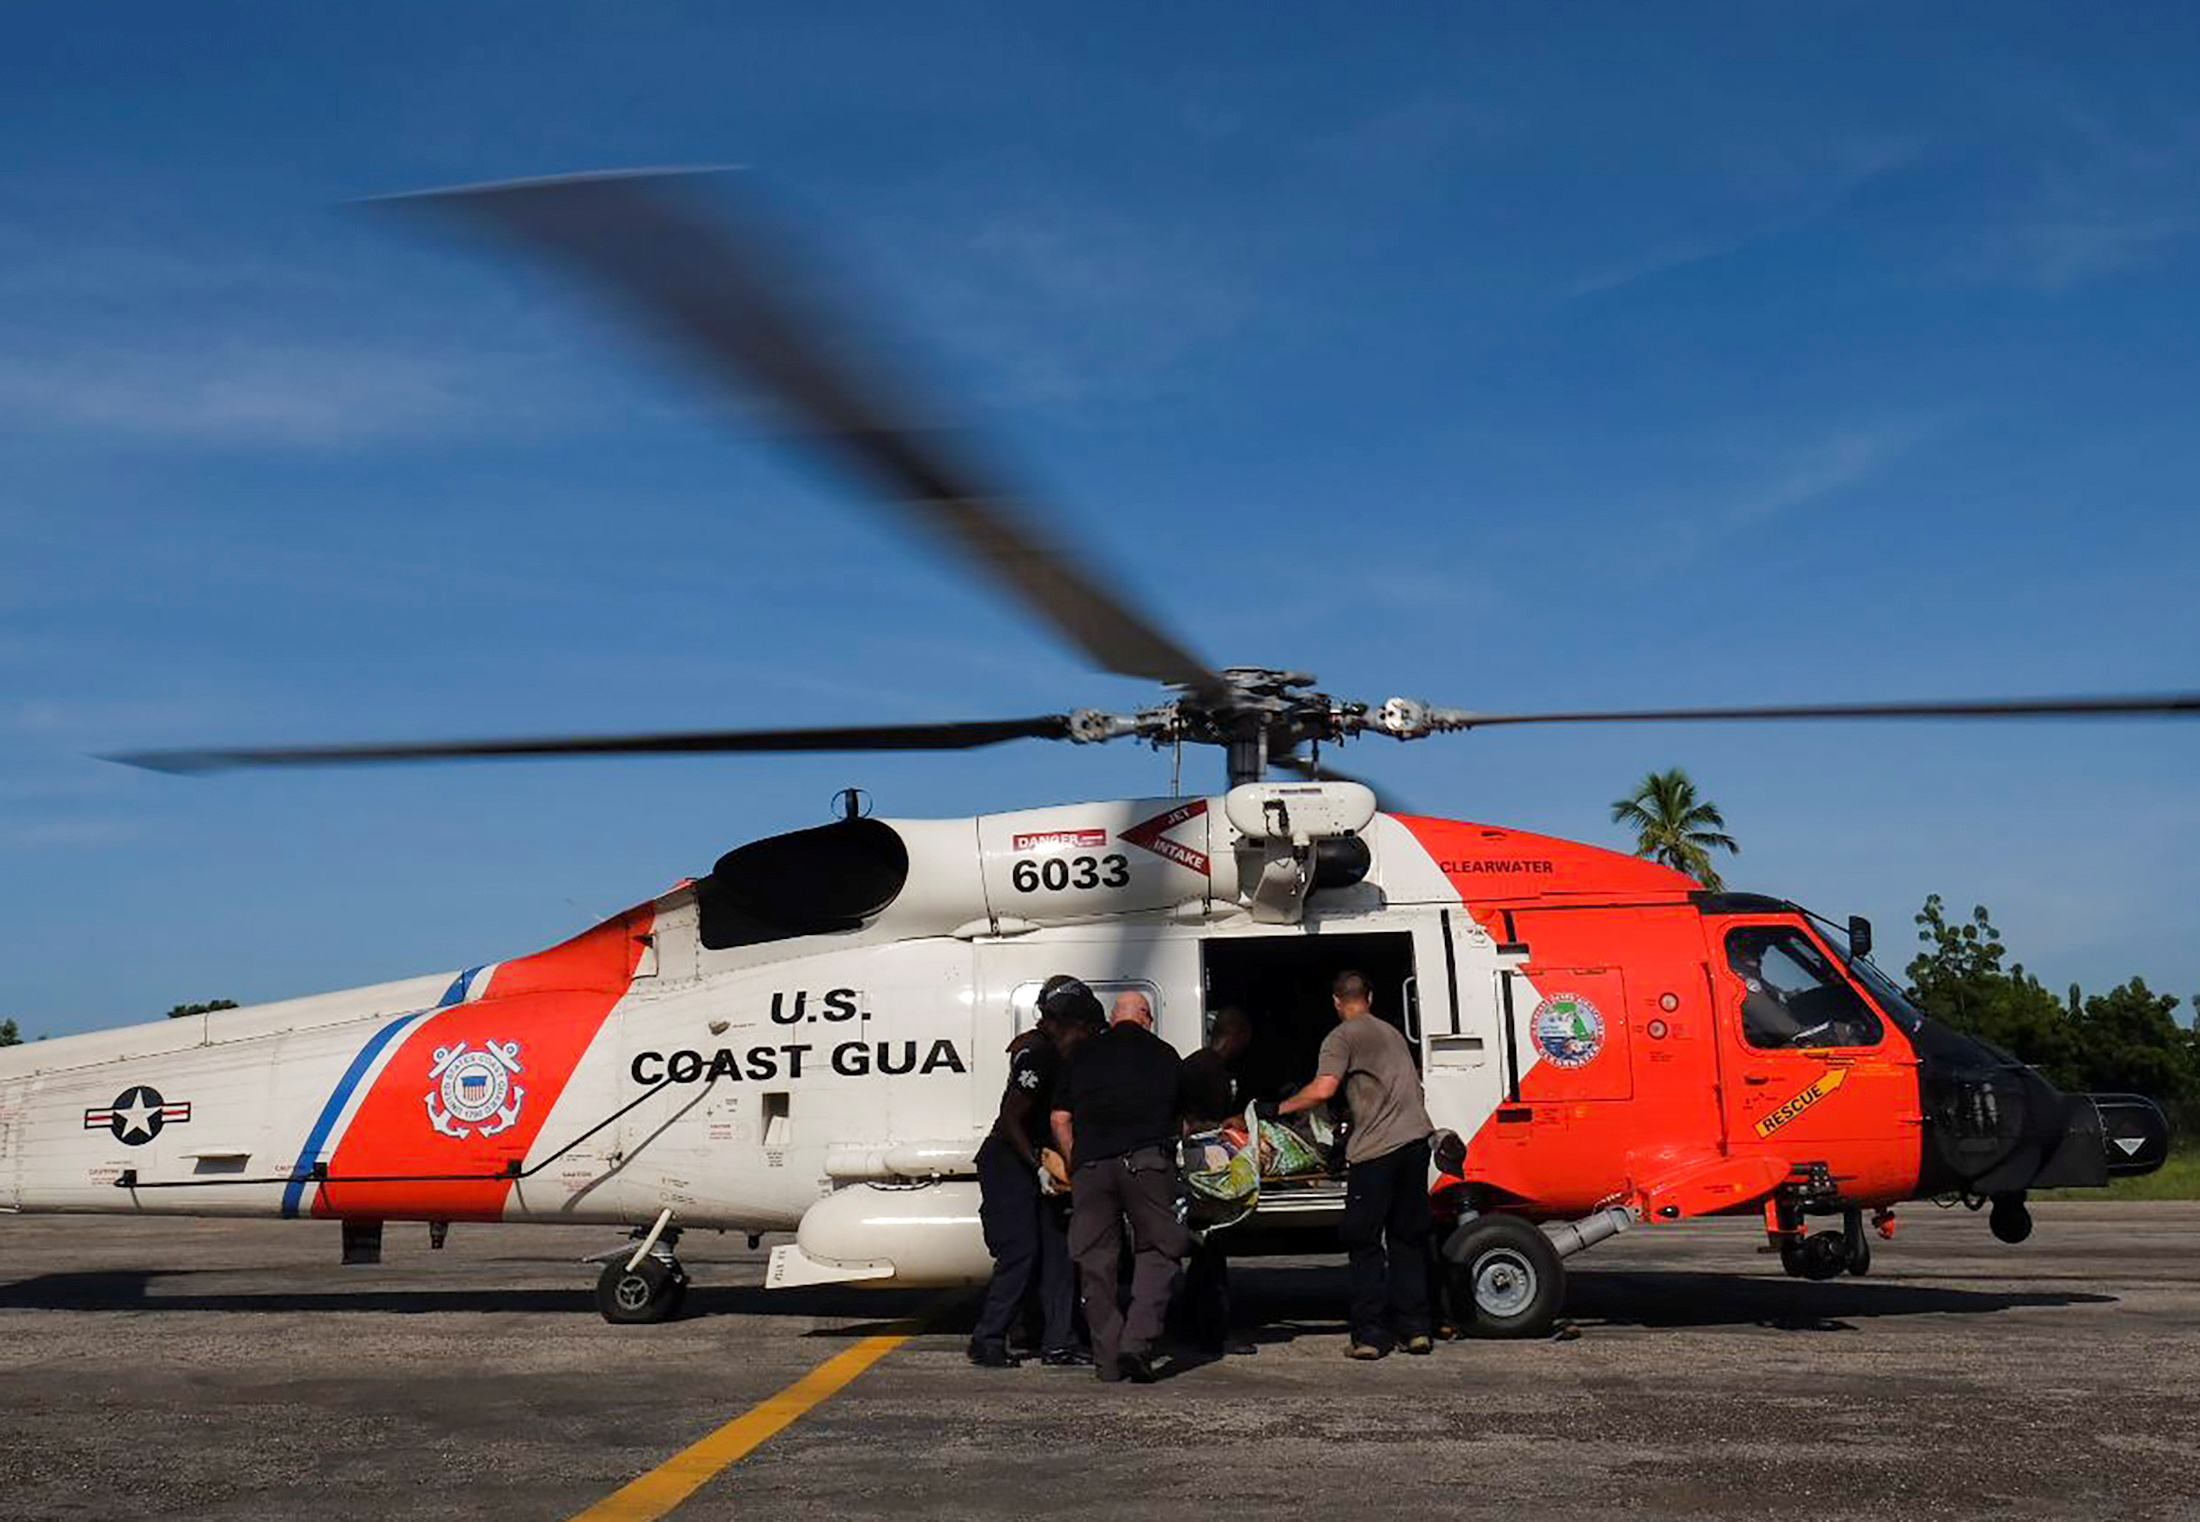 Members of the U.S. Coast Guard board a person who was injured in Saturday's 7.2 magnitude earthquake in a helicopter for evacuation, at the airport, in Les Cayes, Haiti August 16, 2021. REUTERS/Ricardo Arduengo